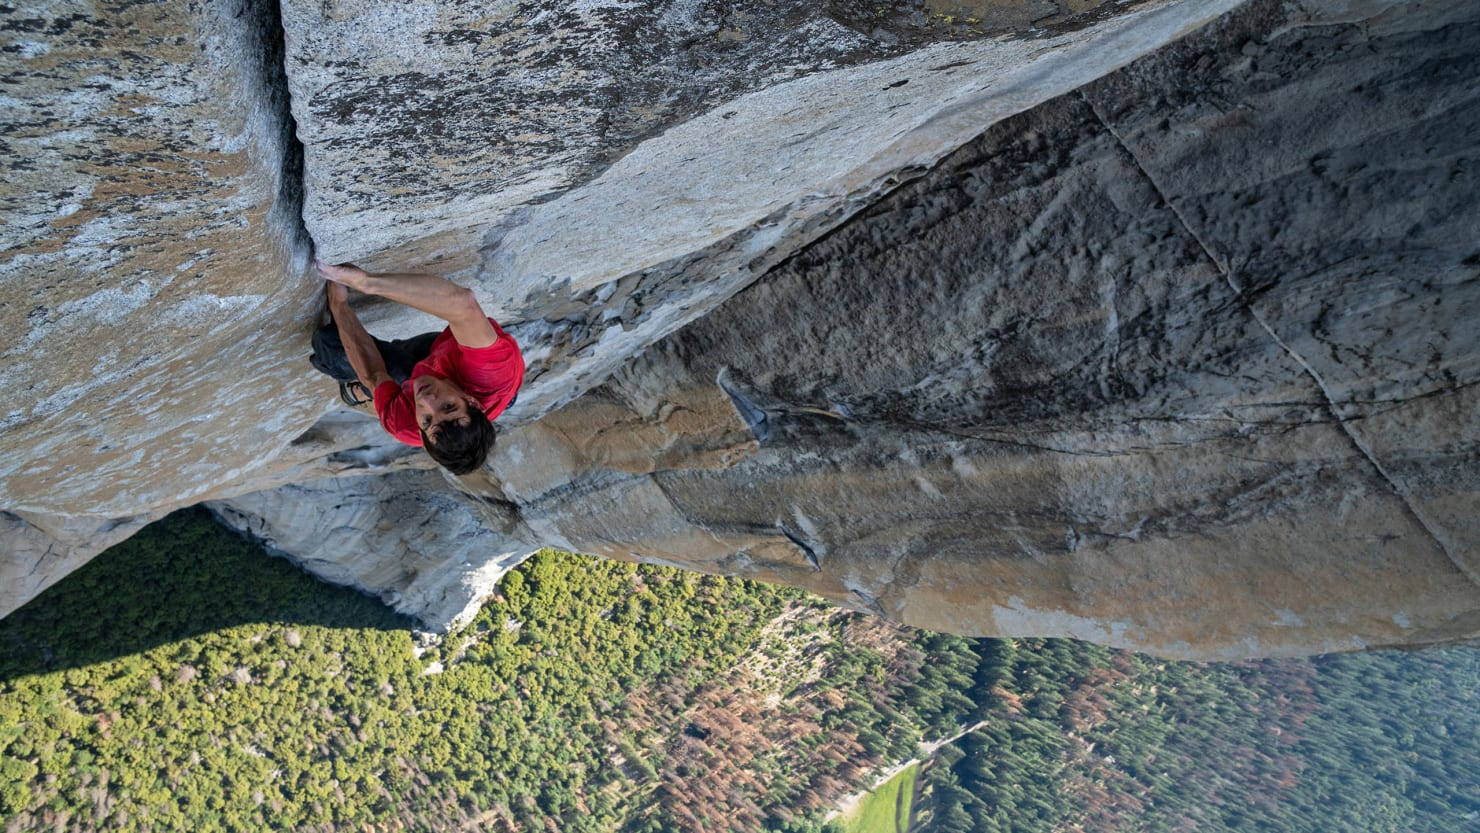 He Climbed 3,000 Feet Without Ropes On Camera It Taught Him What Makes Life Worth Living-3020